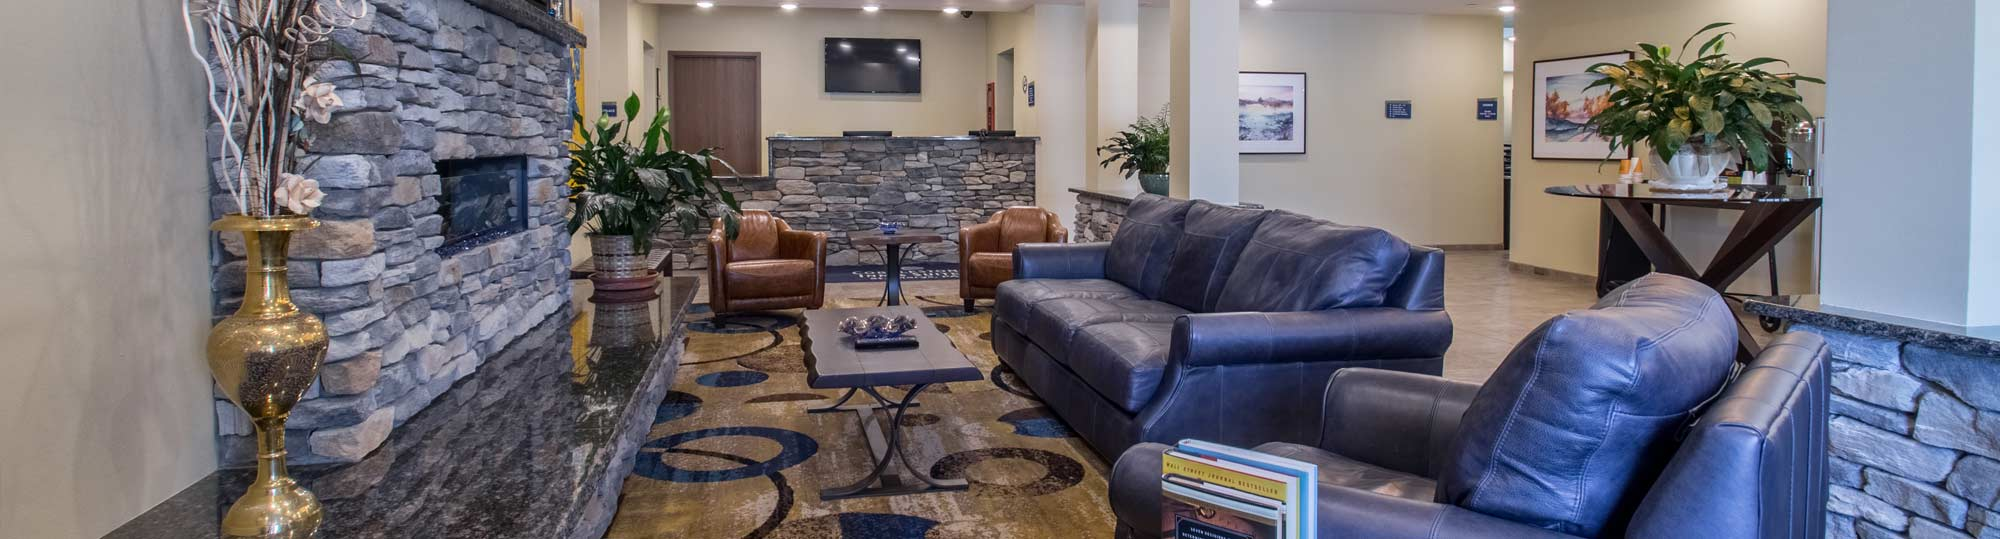 Cobblestone Inn and Suites St. Marys